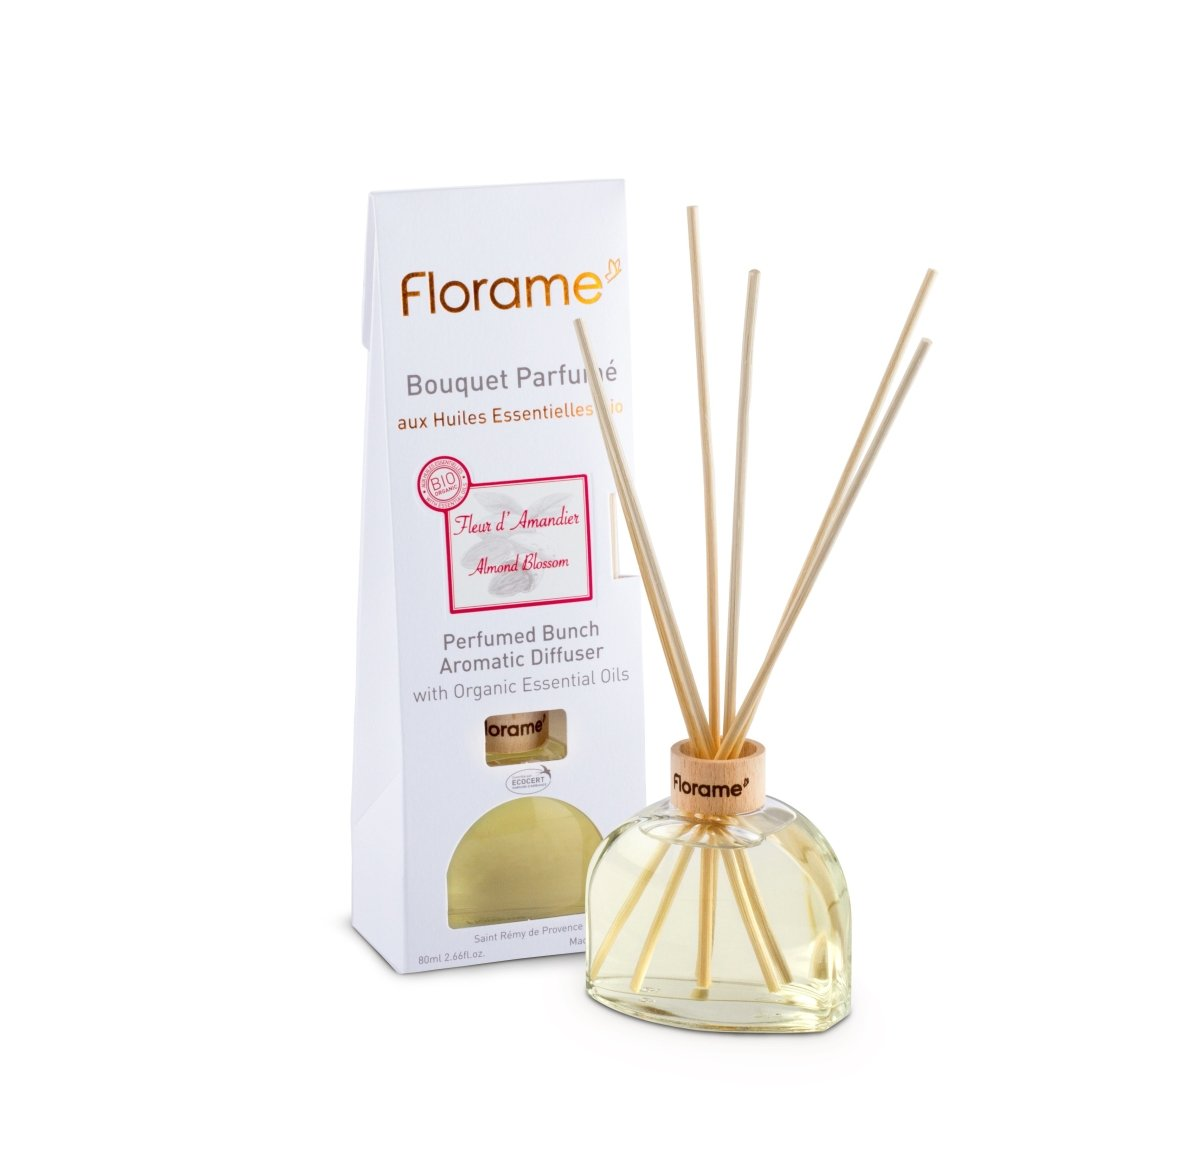 FLORAME Perfumed Sticks Almond Blossom 杏仁花家居香薰座 [80ml] - MINT Organics